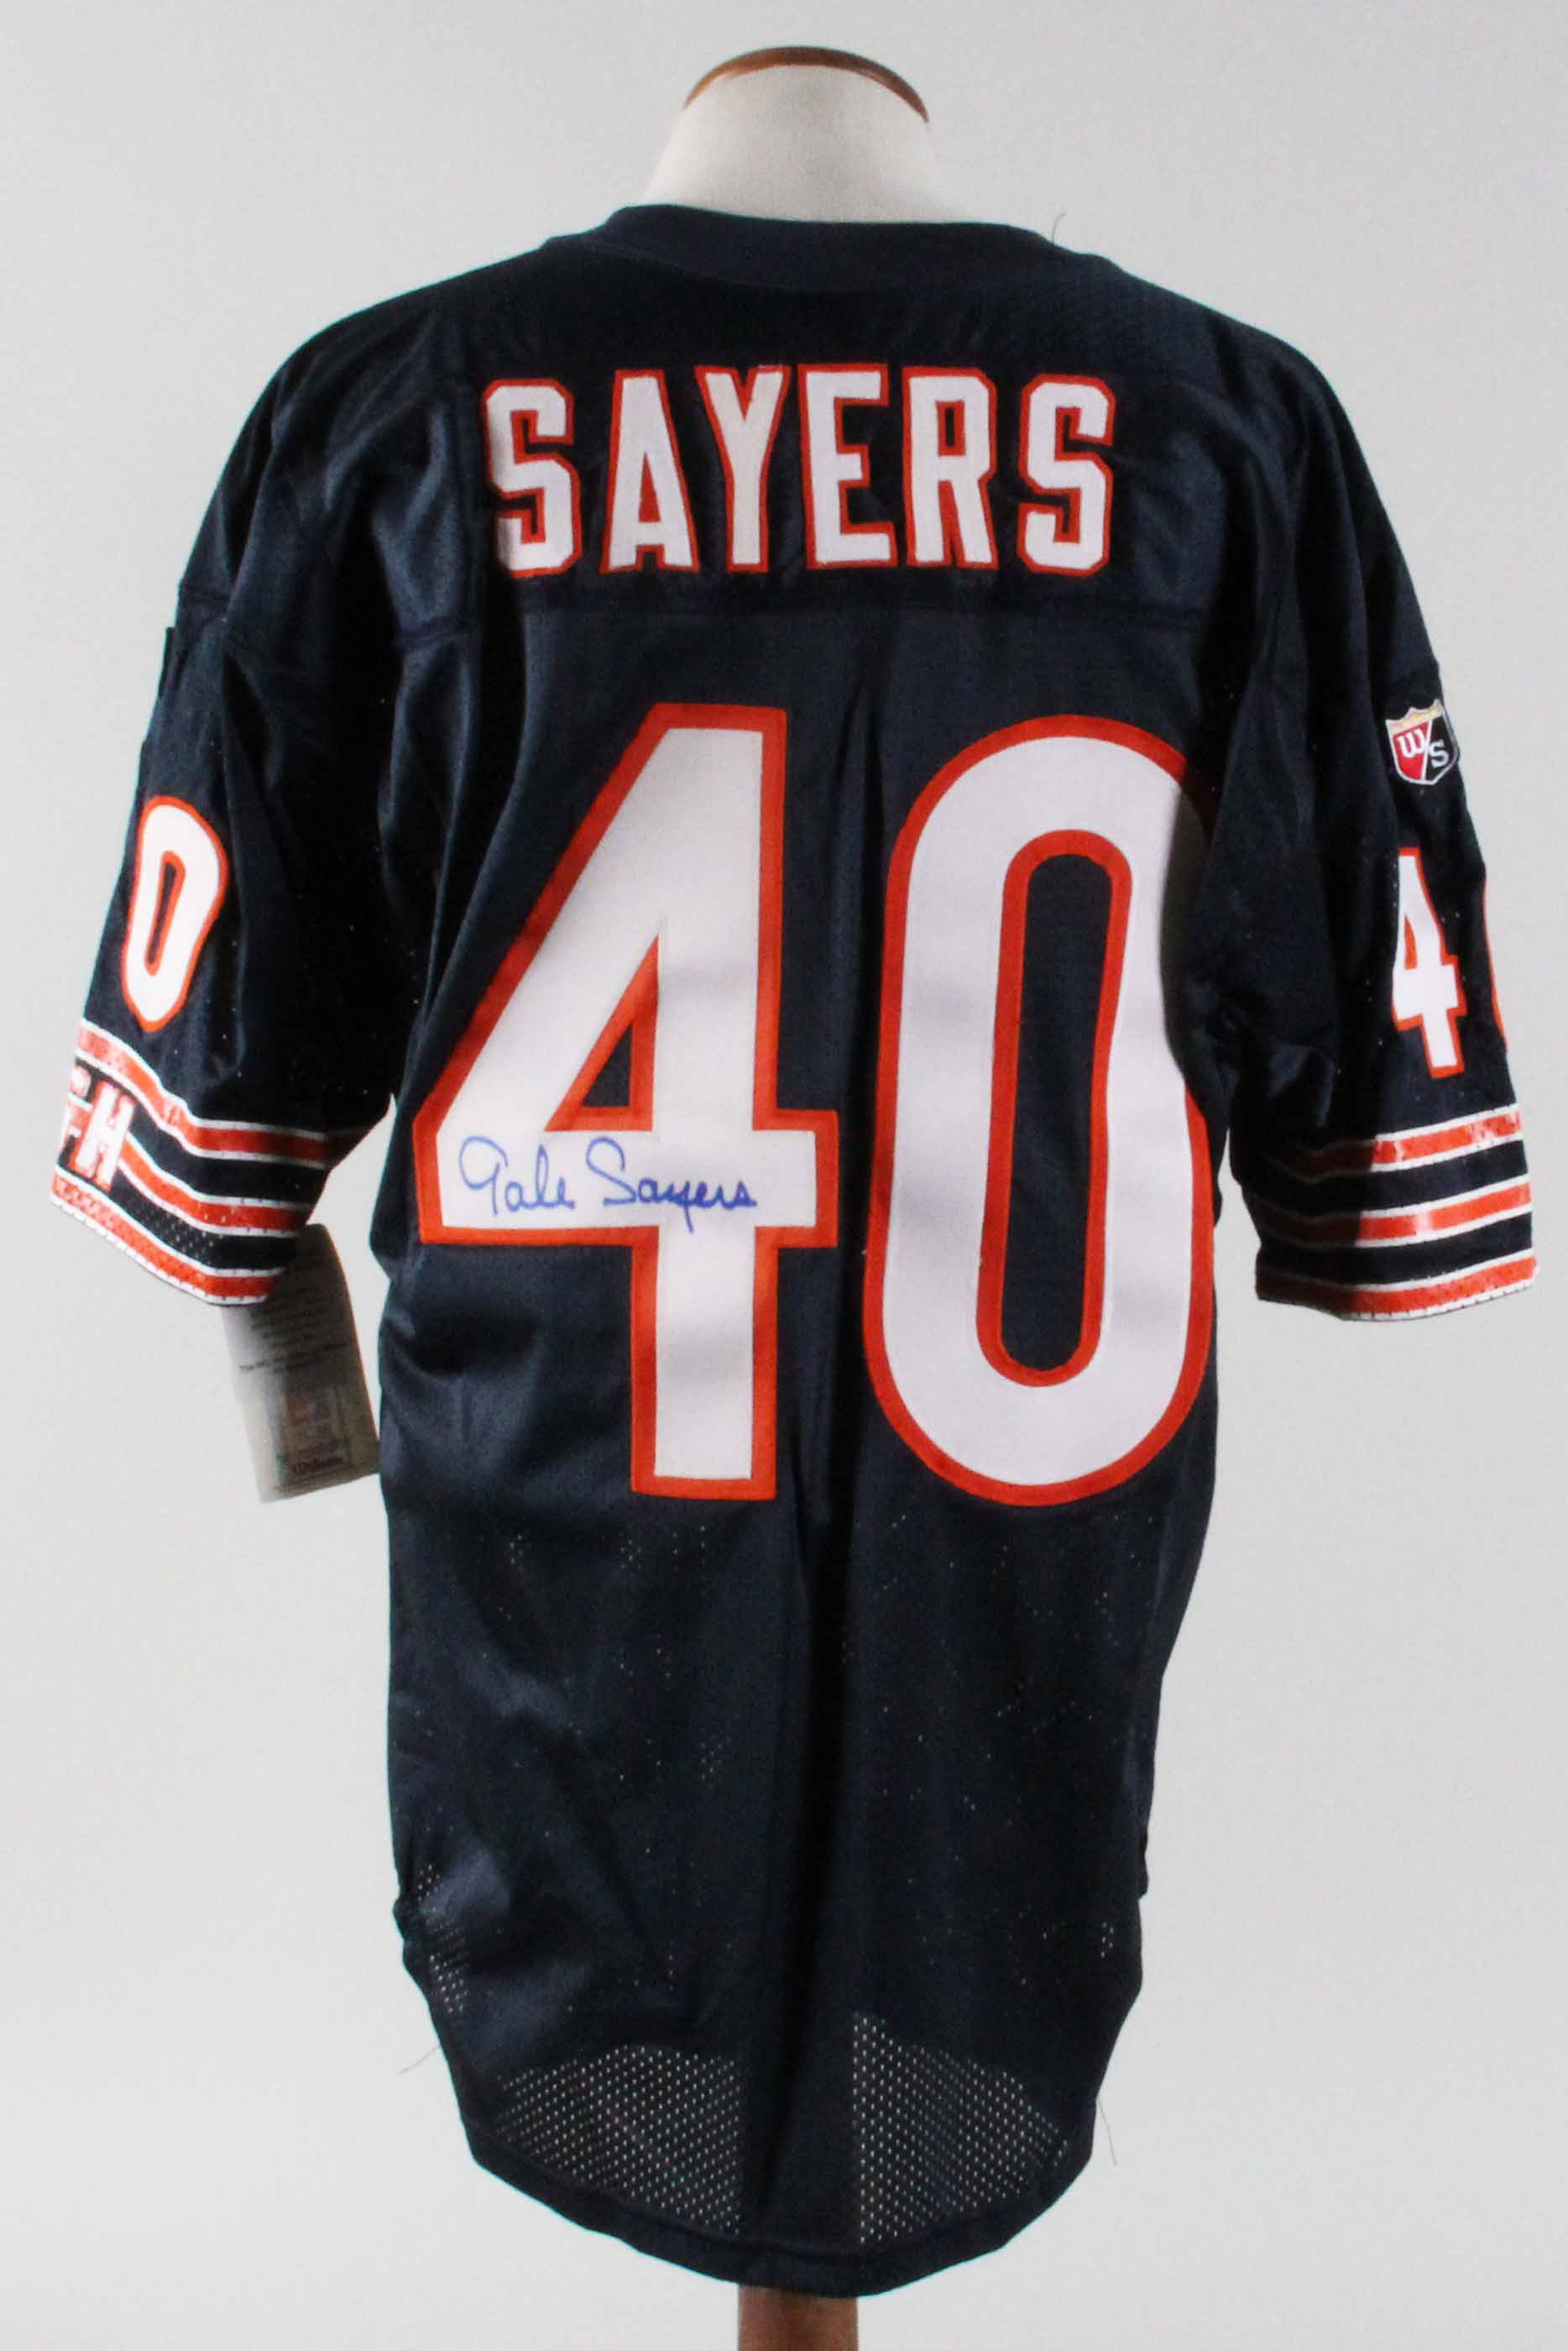 newest c7ee7 18c61 Gale Sayers Signed Jersey Bears Pro Line Authentic - COA JSA